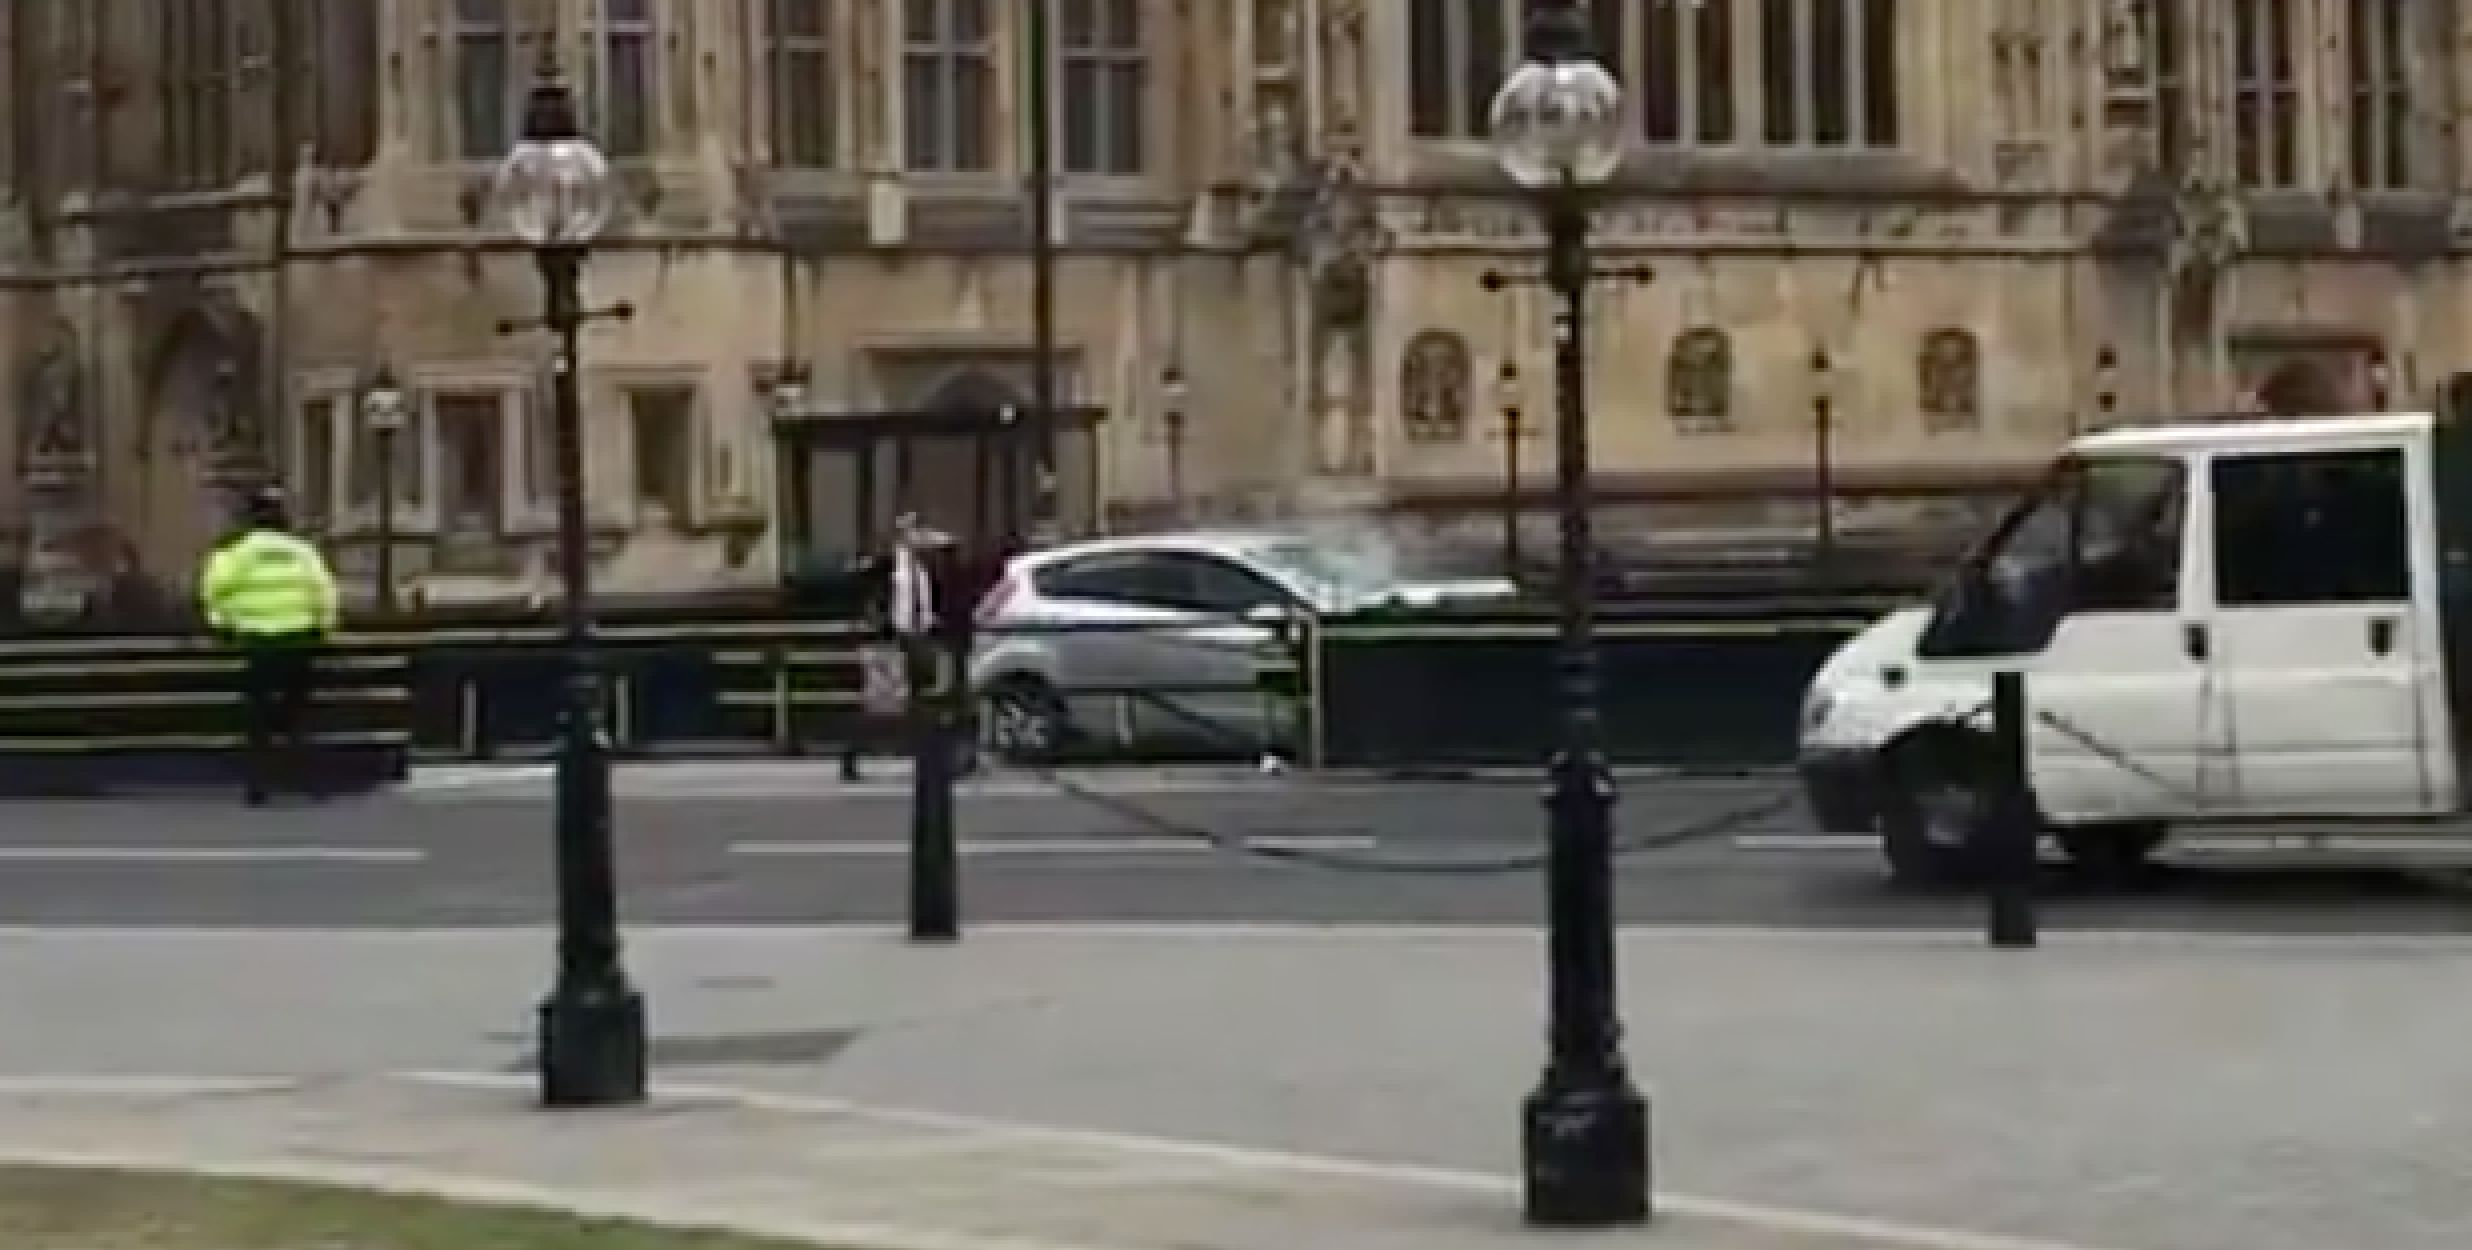 Driver arrested after crashing into barrier at British Parliament